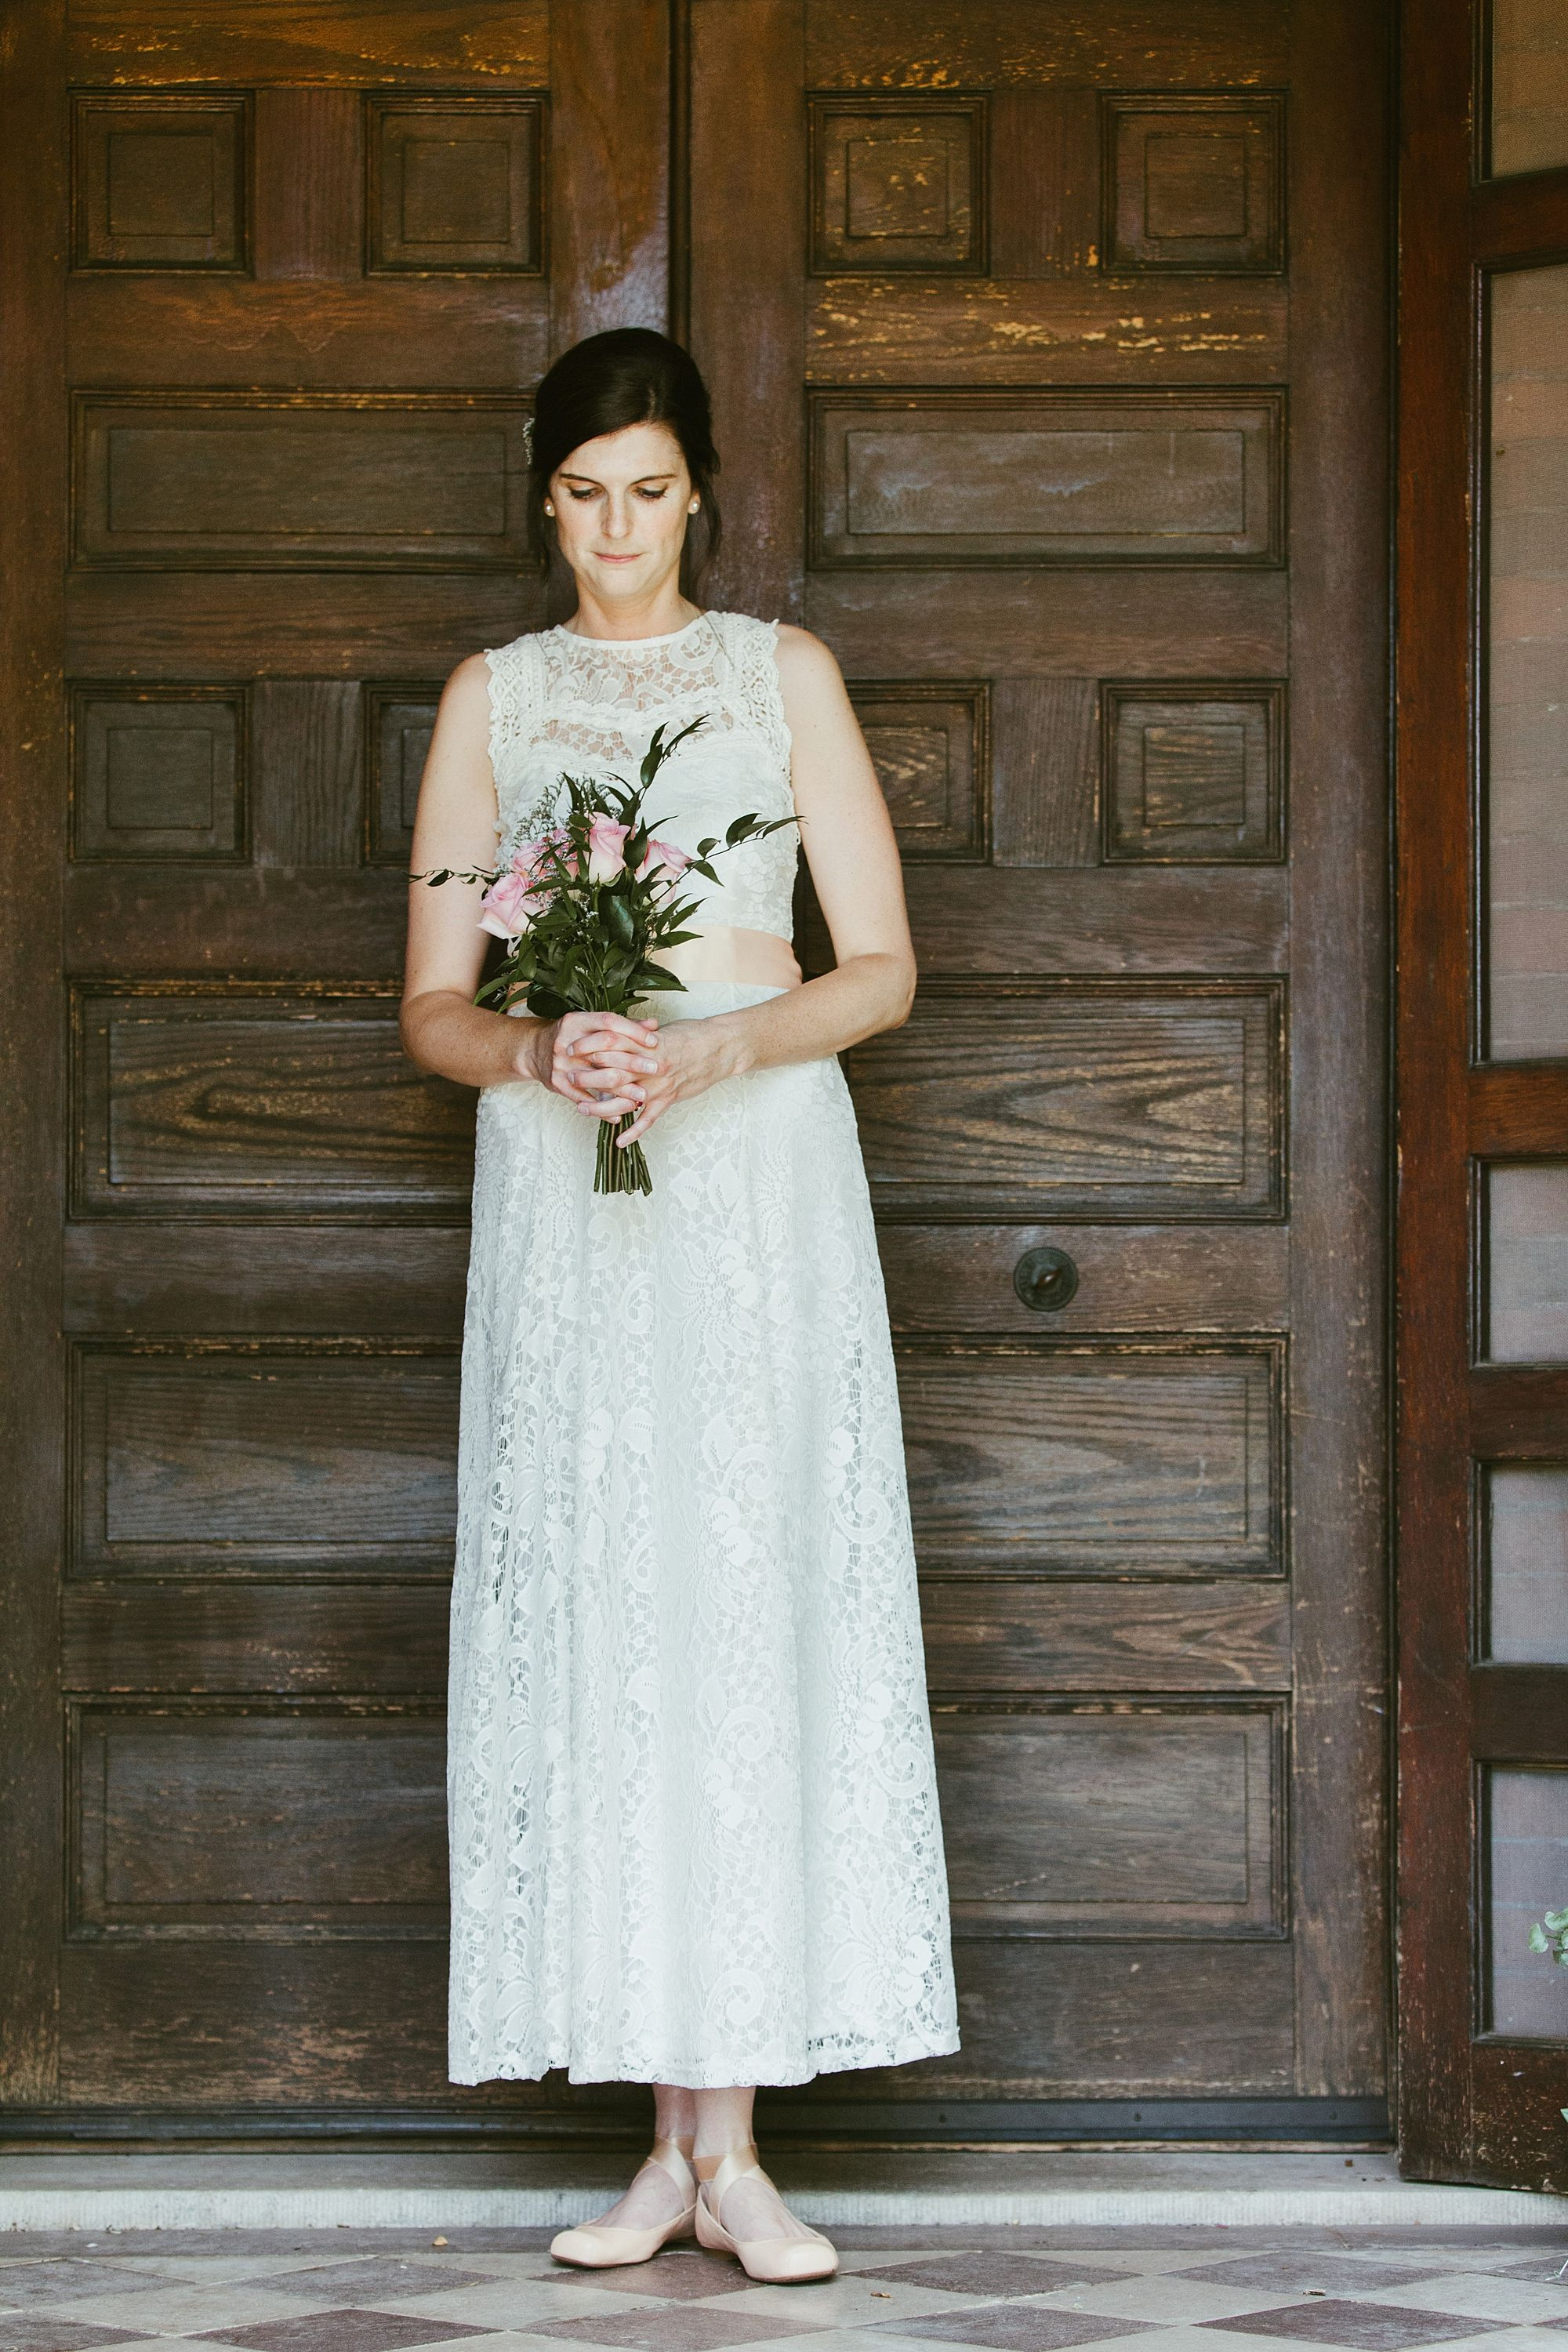 An In Town Elopement from Simply Stated | Simple lace wedding dress ...